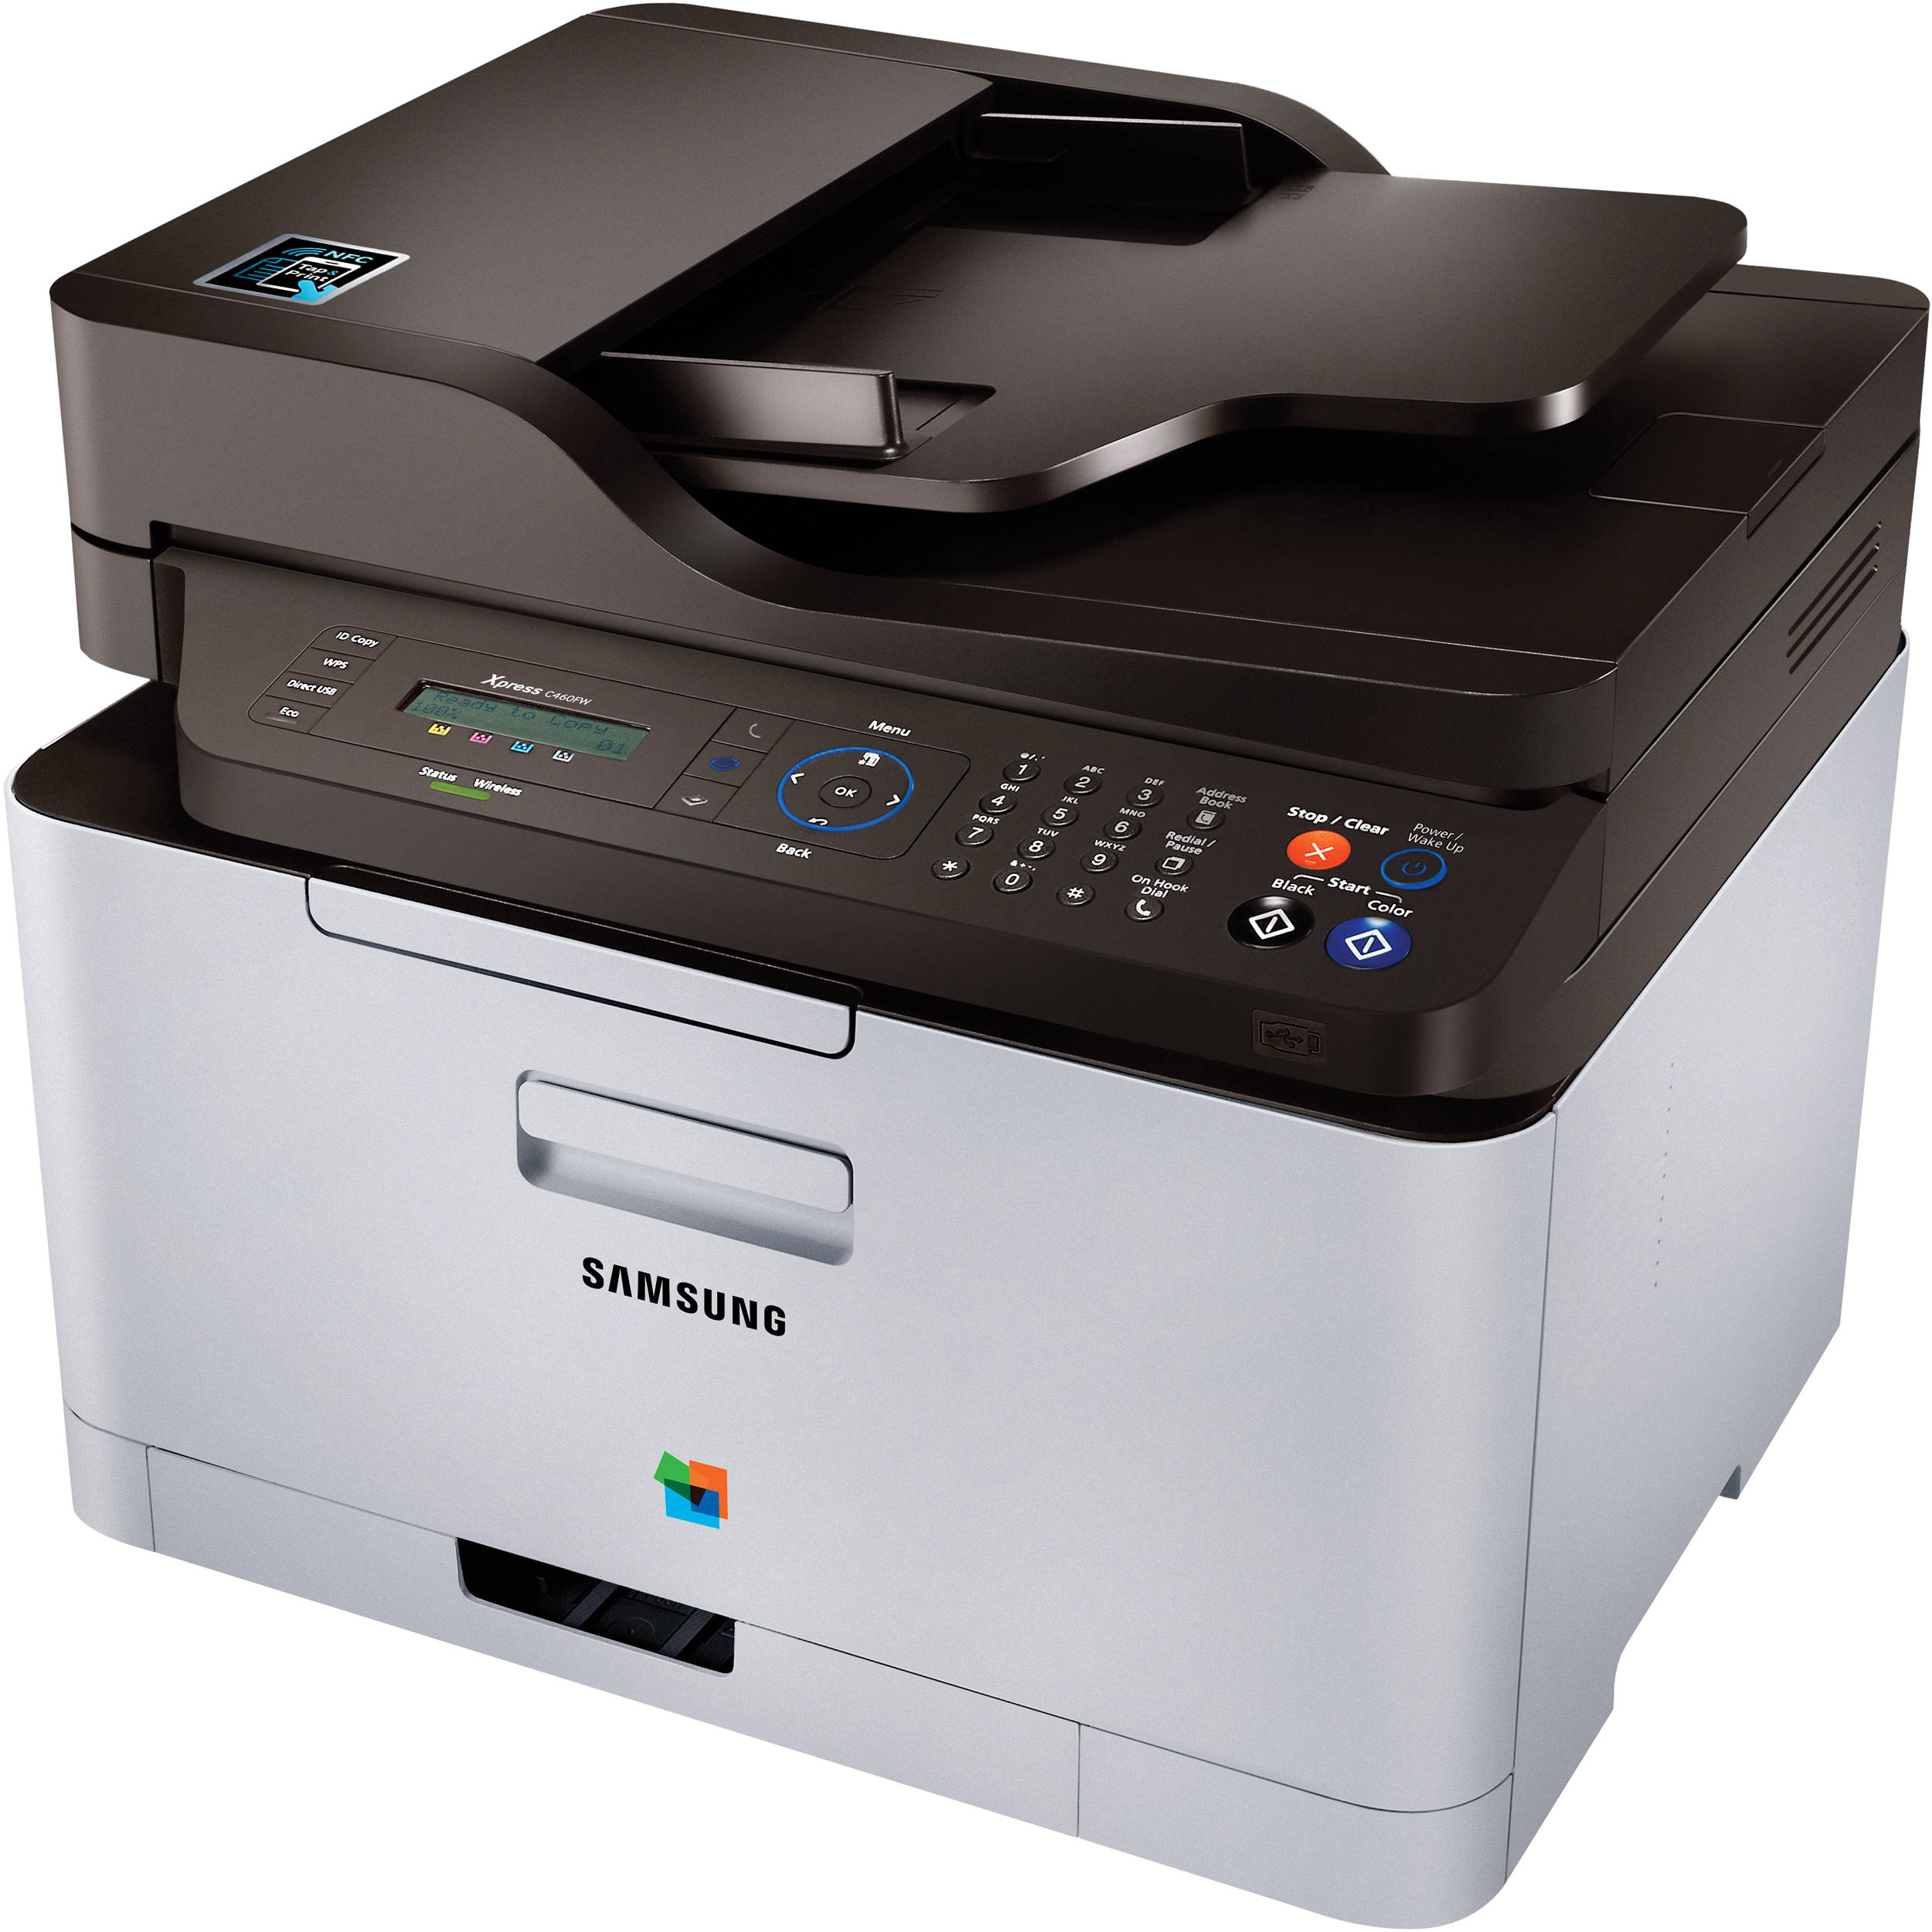 Samsung Xpress SL-C460FW MFP Universal Print Windows Vista 32-BIT